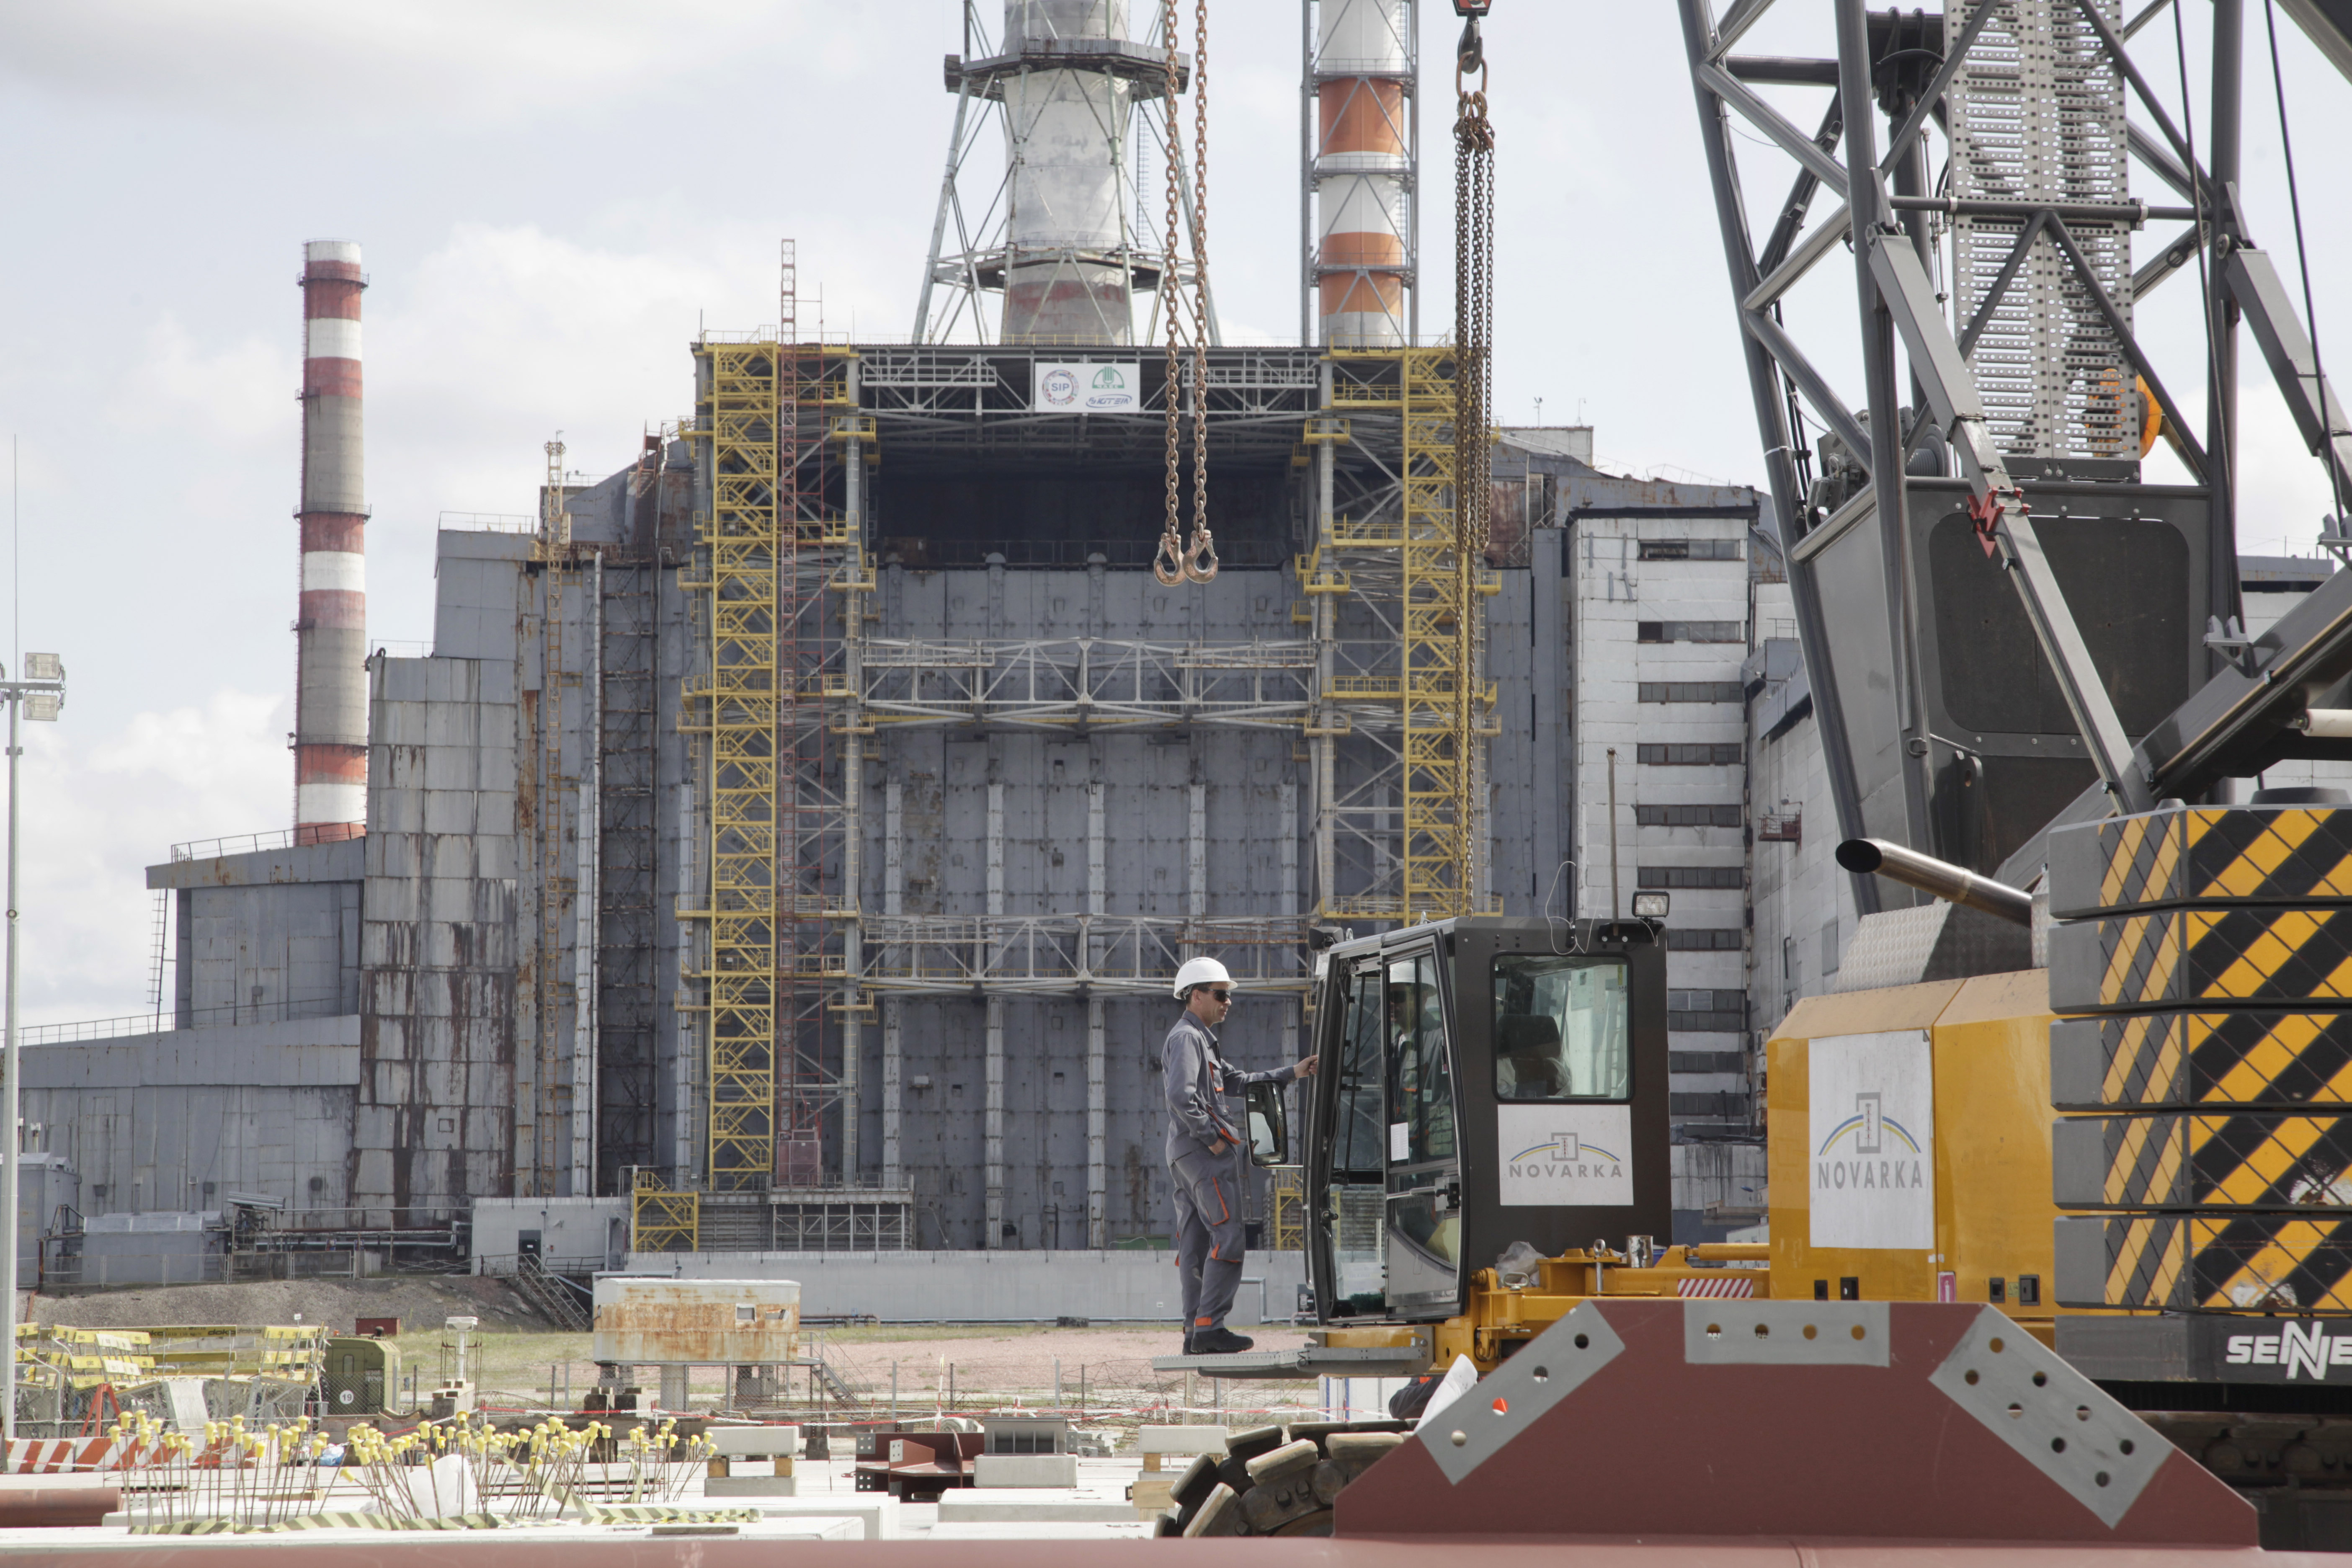 Construction Of New Chernobyl Shelter Begins On 26th